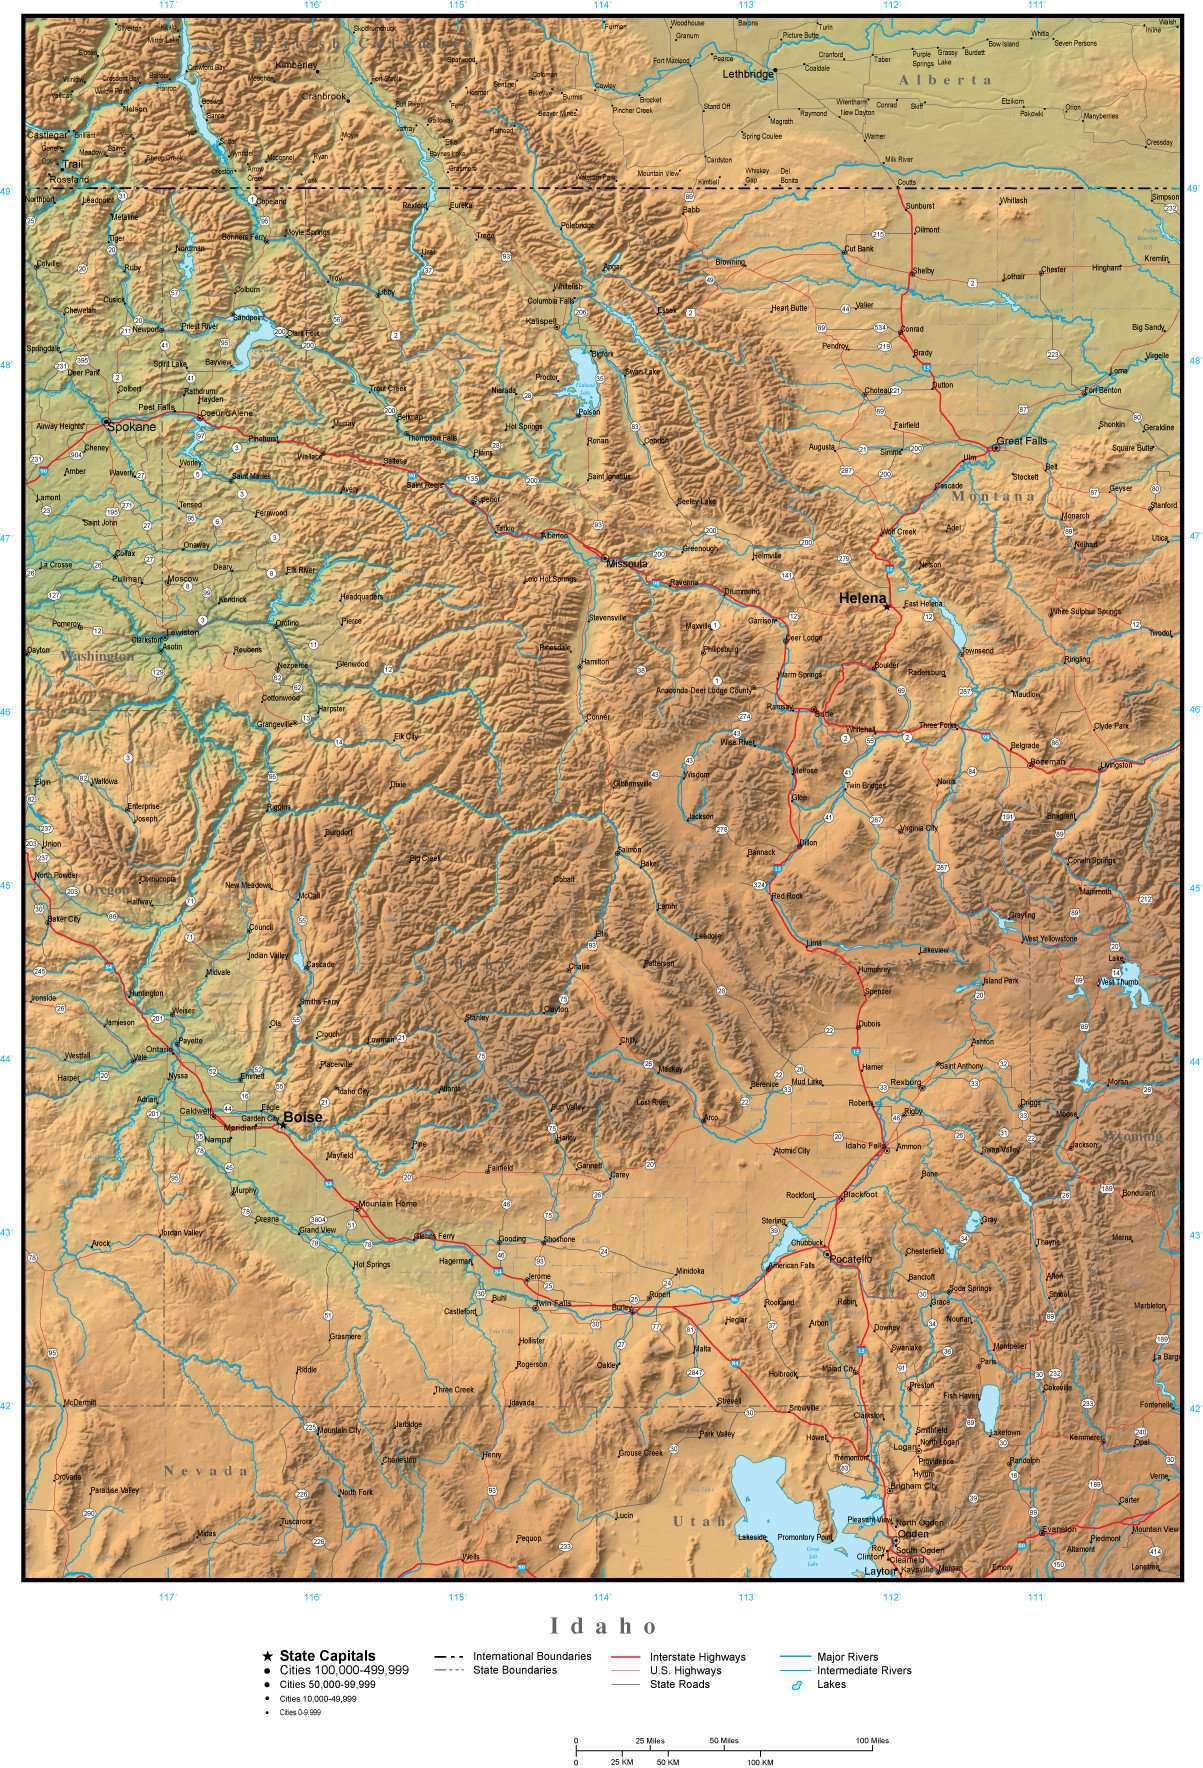 Idaho Map Plus Terrain with Cities Roads and Water Features on pacific northwest map, new jersey map, hawaii map, minnesota map, michigan map, wisconsin map, north dakota map, oregon map, florida map, usa map, state map, colorado map, utah map, washington map, arizona map, maine map, illinois map, canada map, missouri map, california map, iowa map, maryland map, texas map, ohio map, indiana map, louisiana map, western us map, montana map, nevada map,